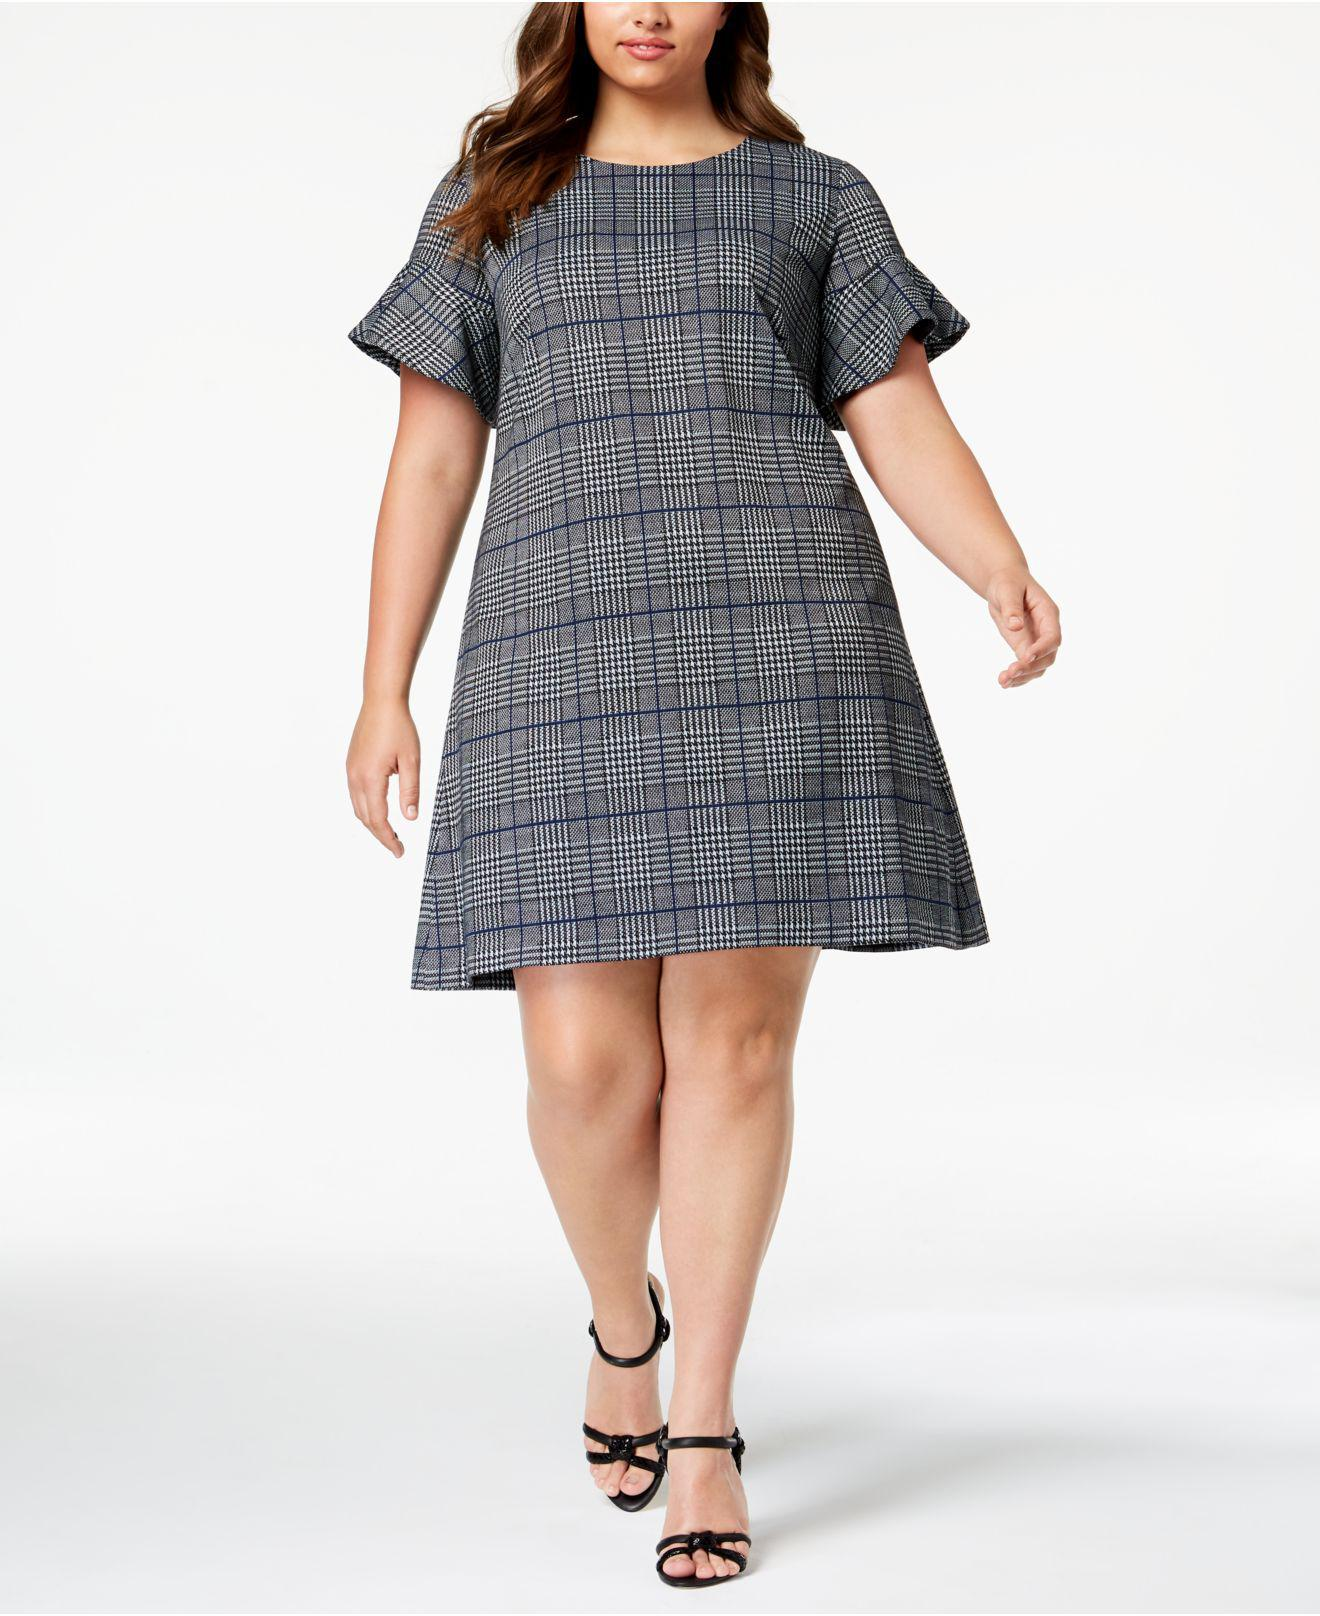 58878ca4d2a Lyst - Calvin Klein Plus Size Plaid Flared-sleeve Dress in Black